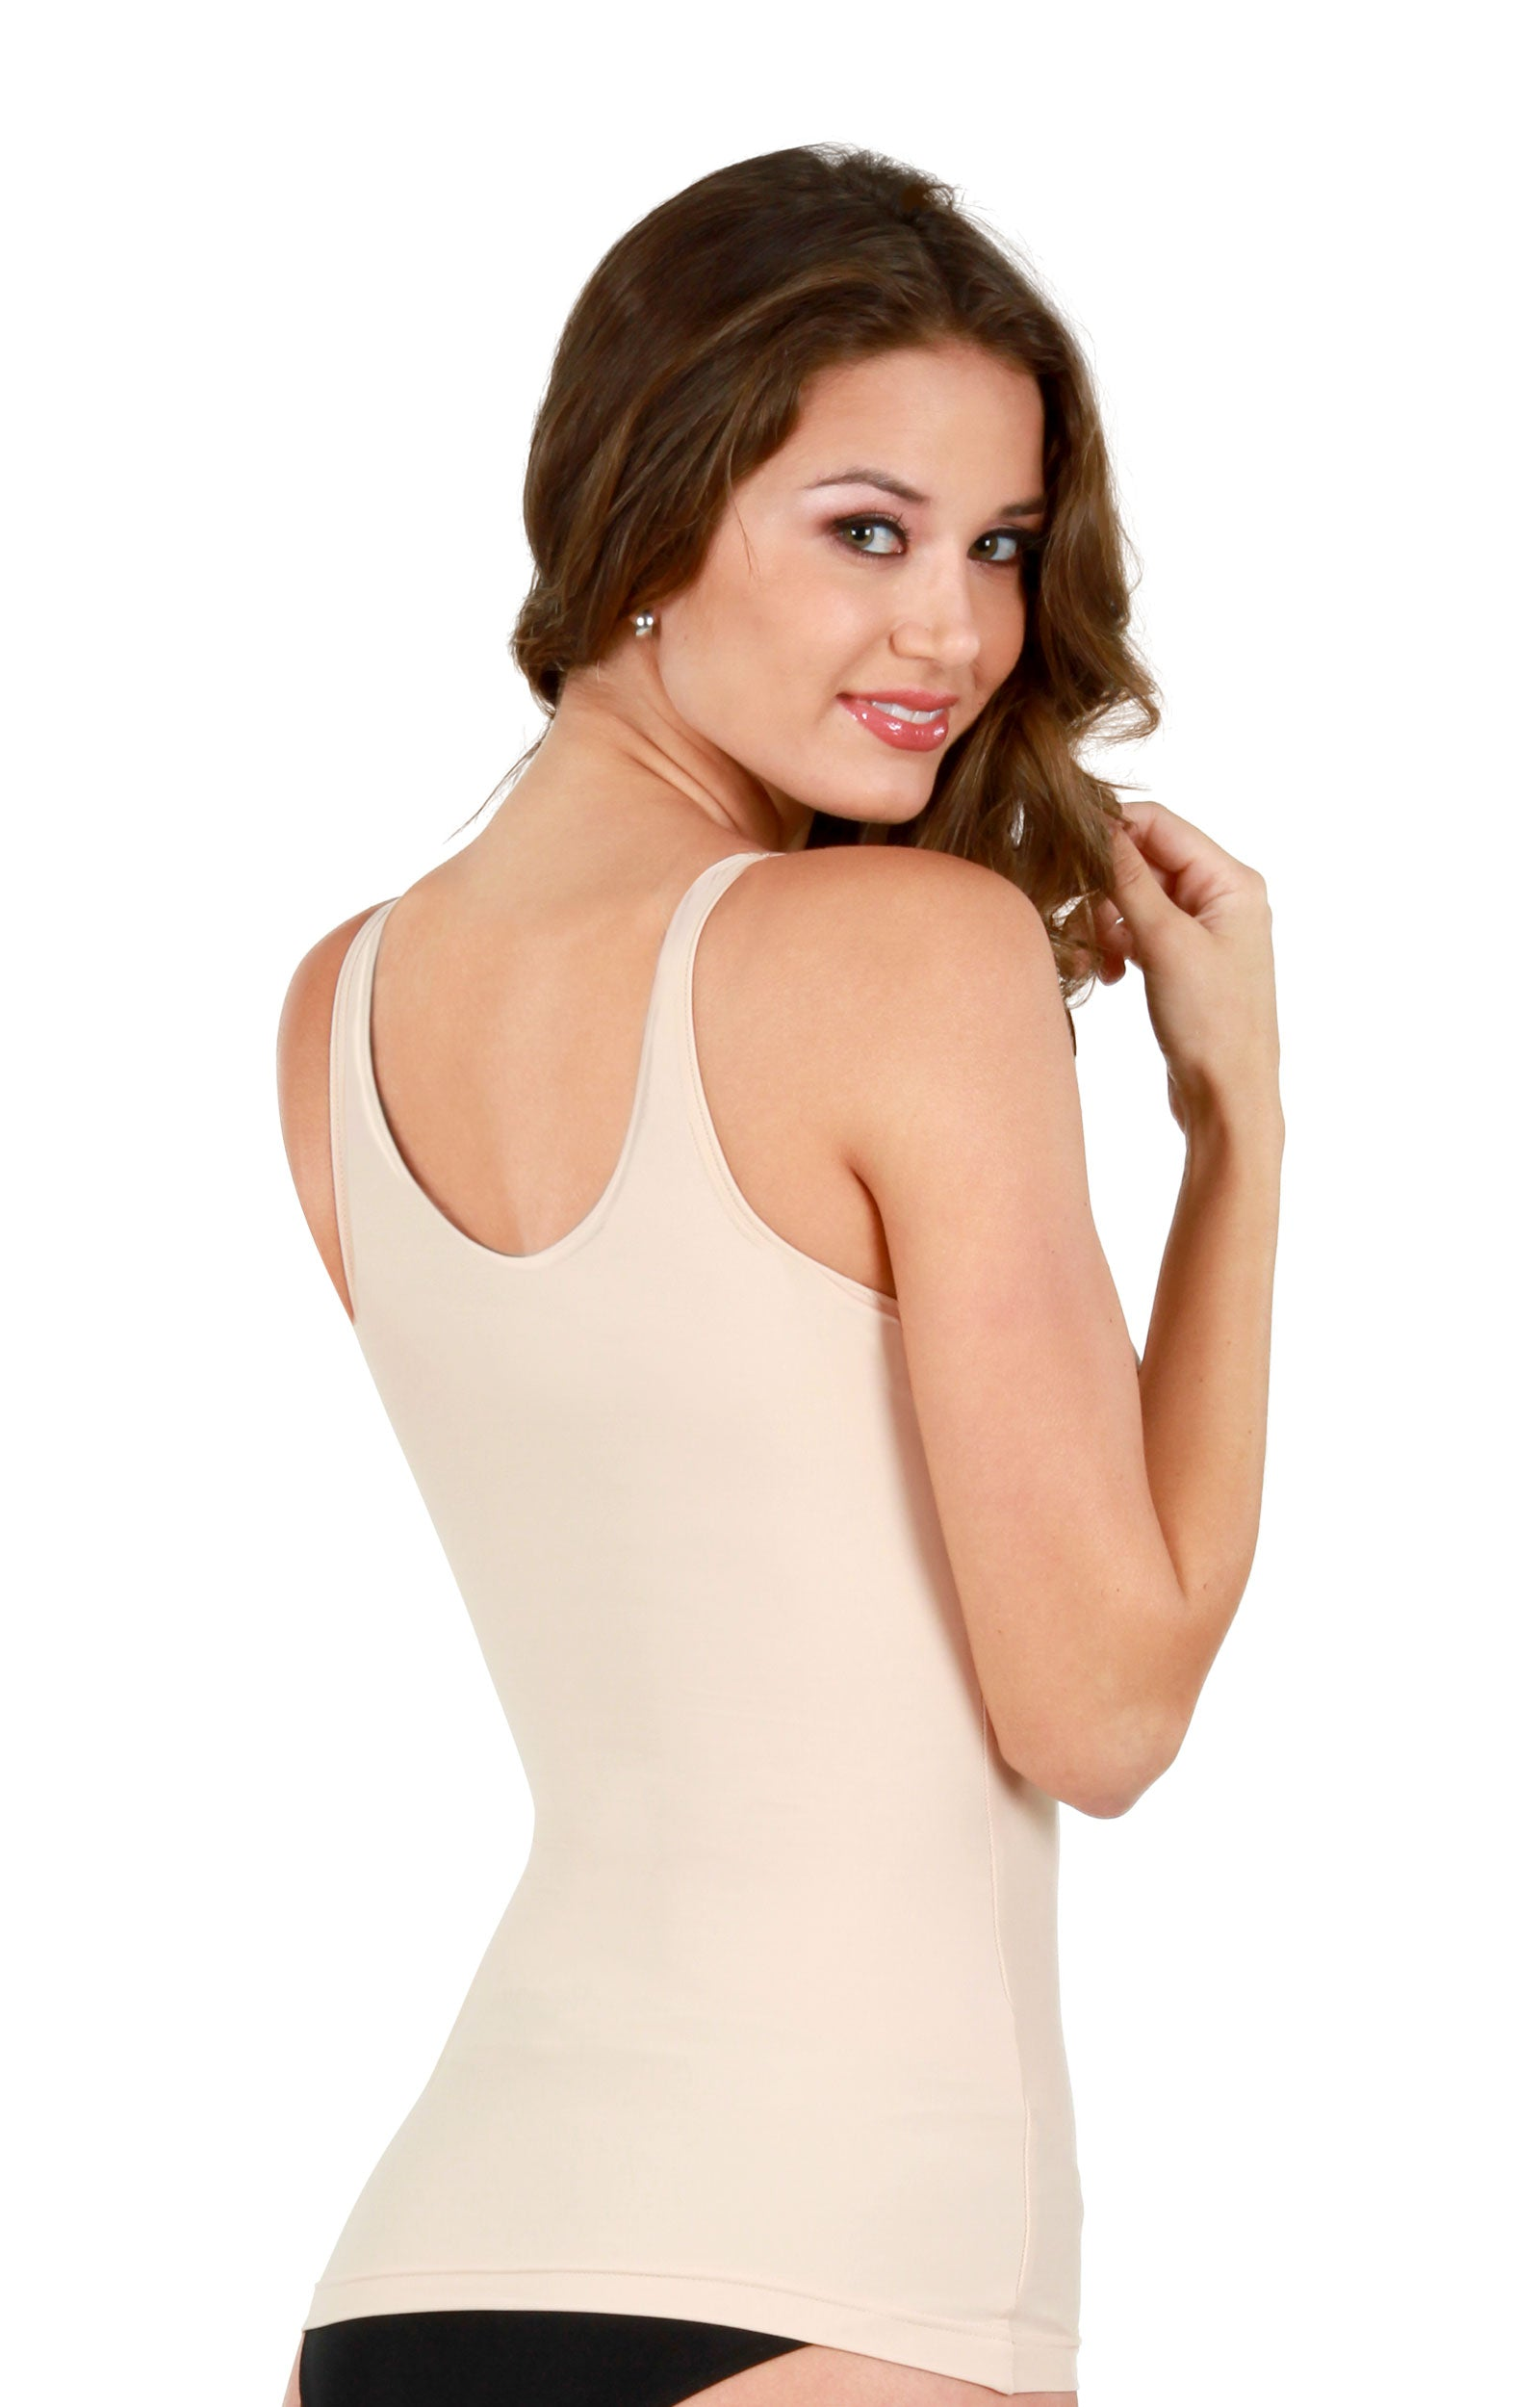 e47de782639d5 The Perfect Everyday Back Smoothing Minimizer Bra Shaping Camisole and  Longline Bra In-One - Shapeez